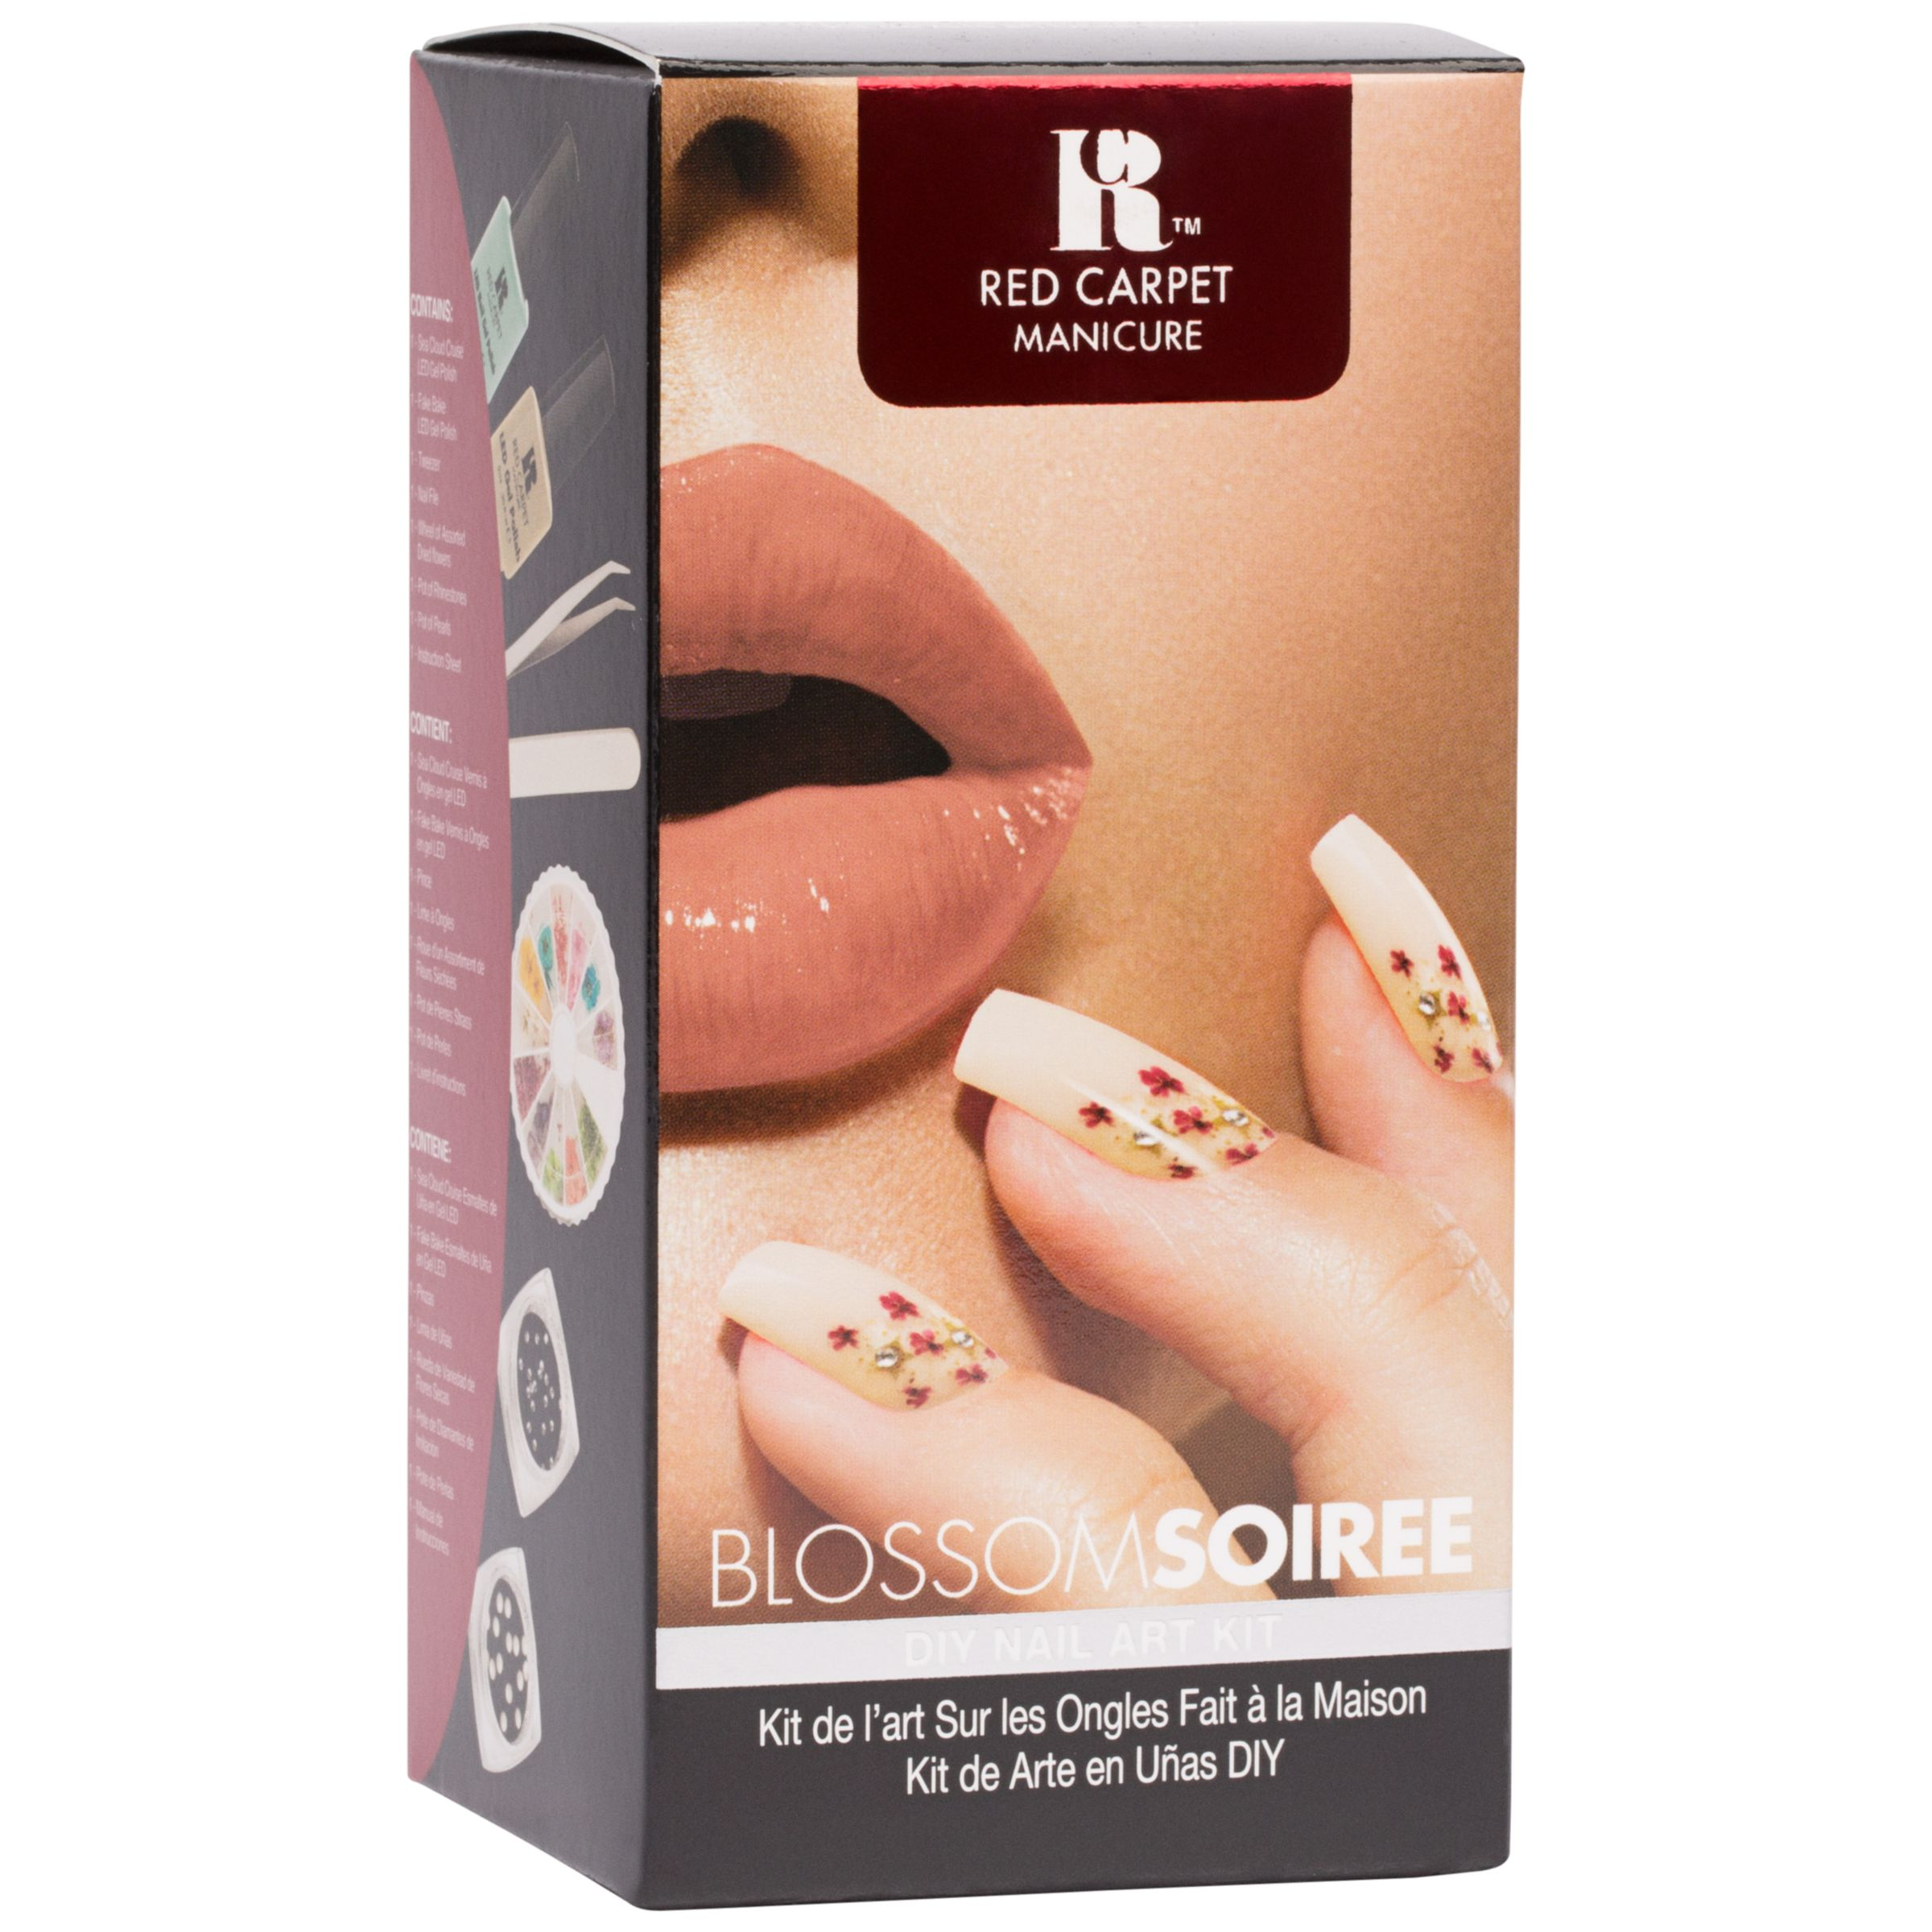 Red Carpet Manicure Red Carpet Manicure Blossom Soiree Flower Desing Nail Art Kit